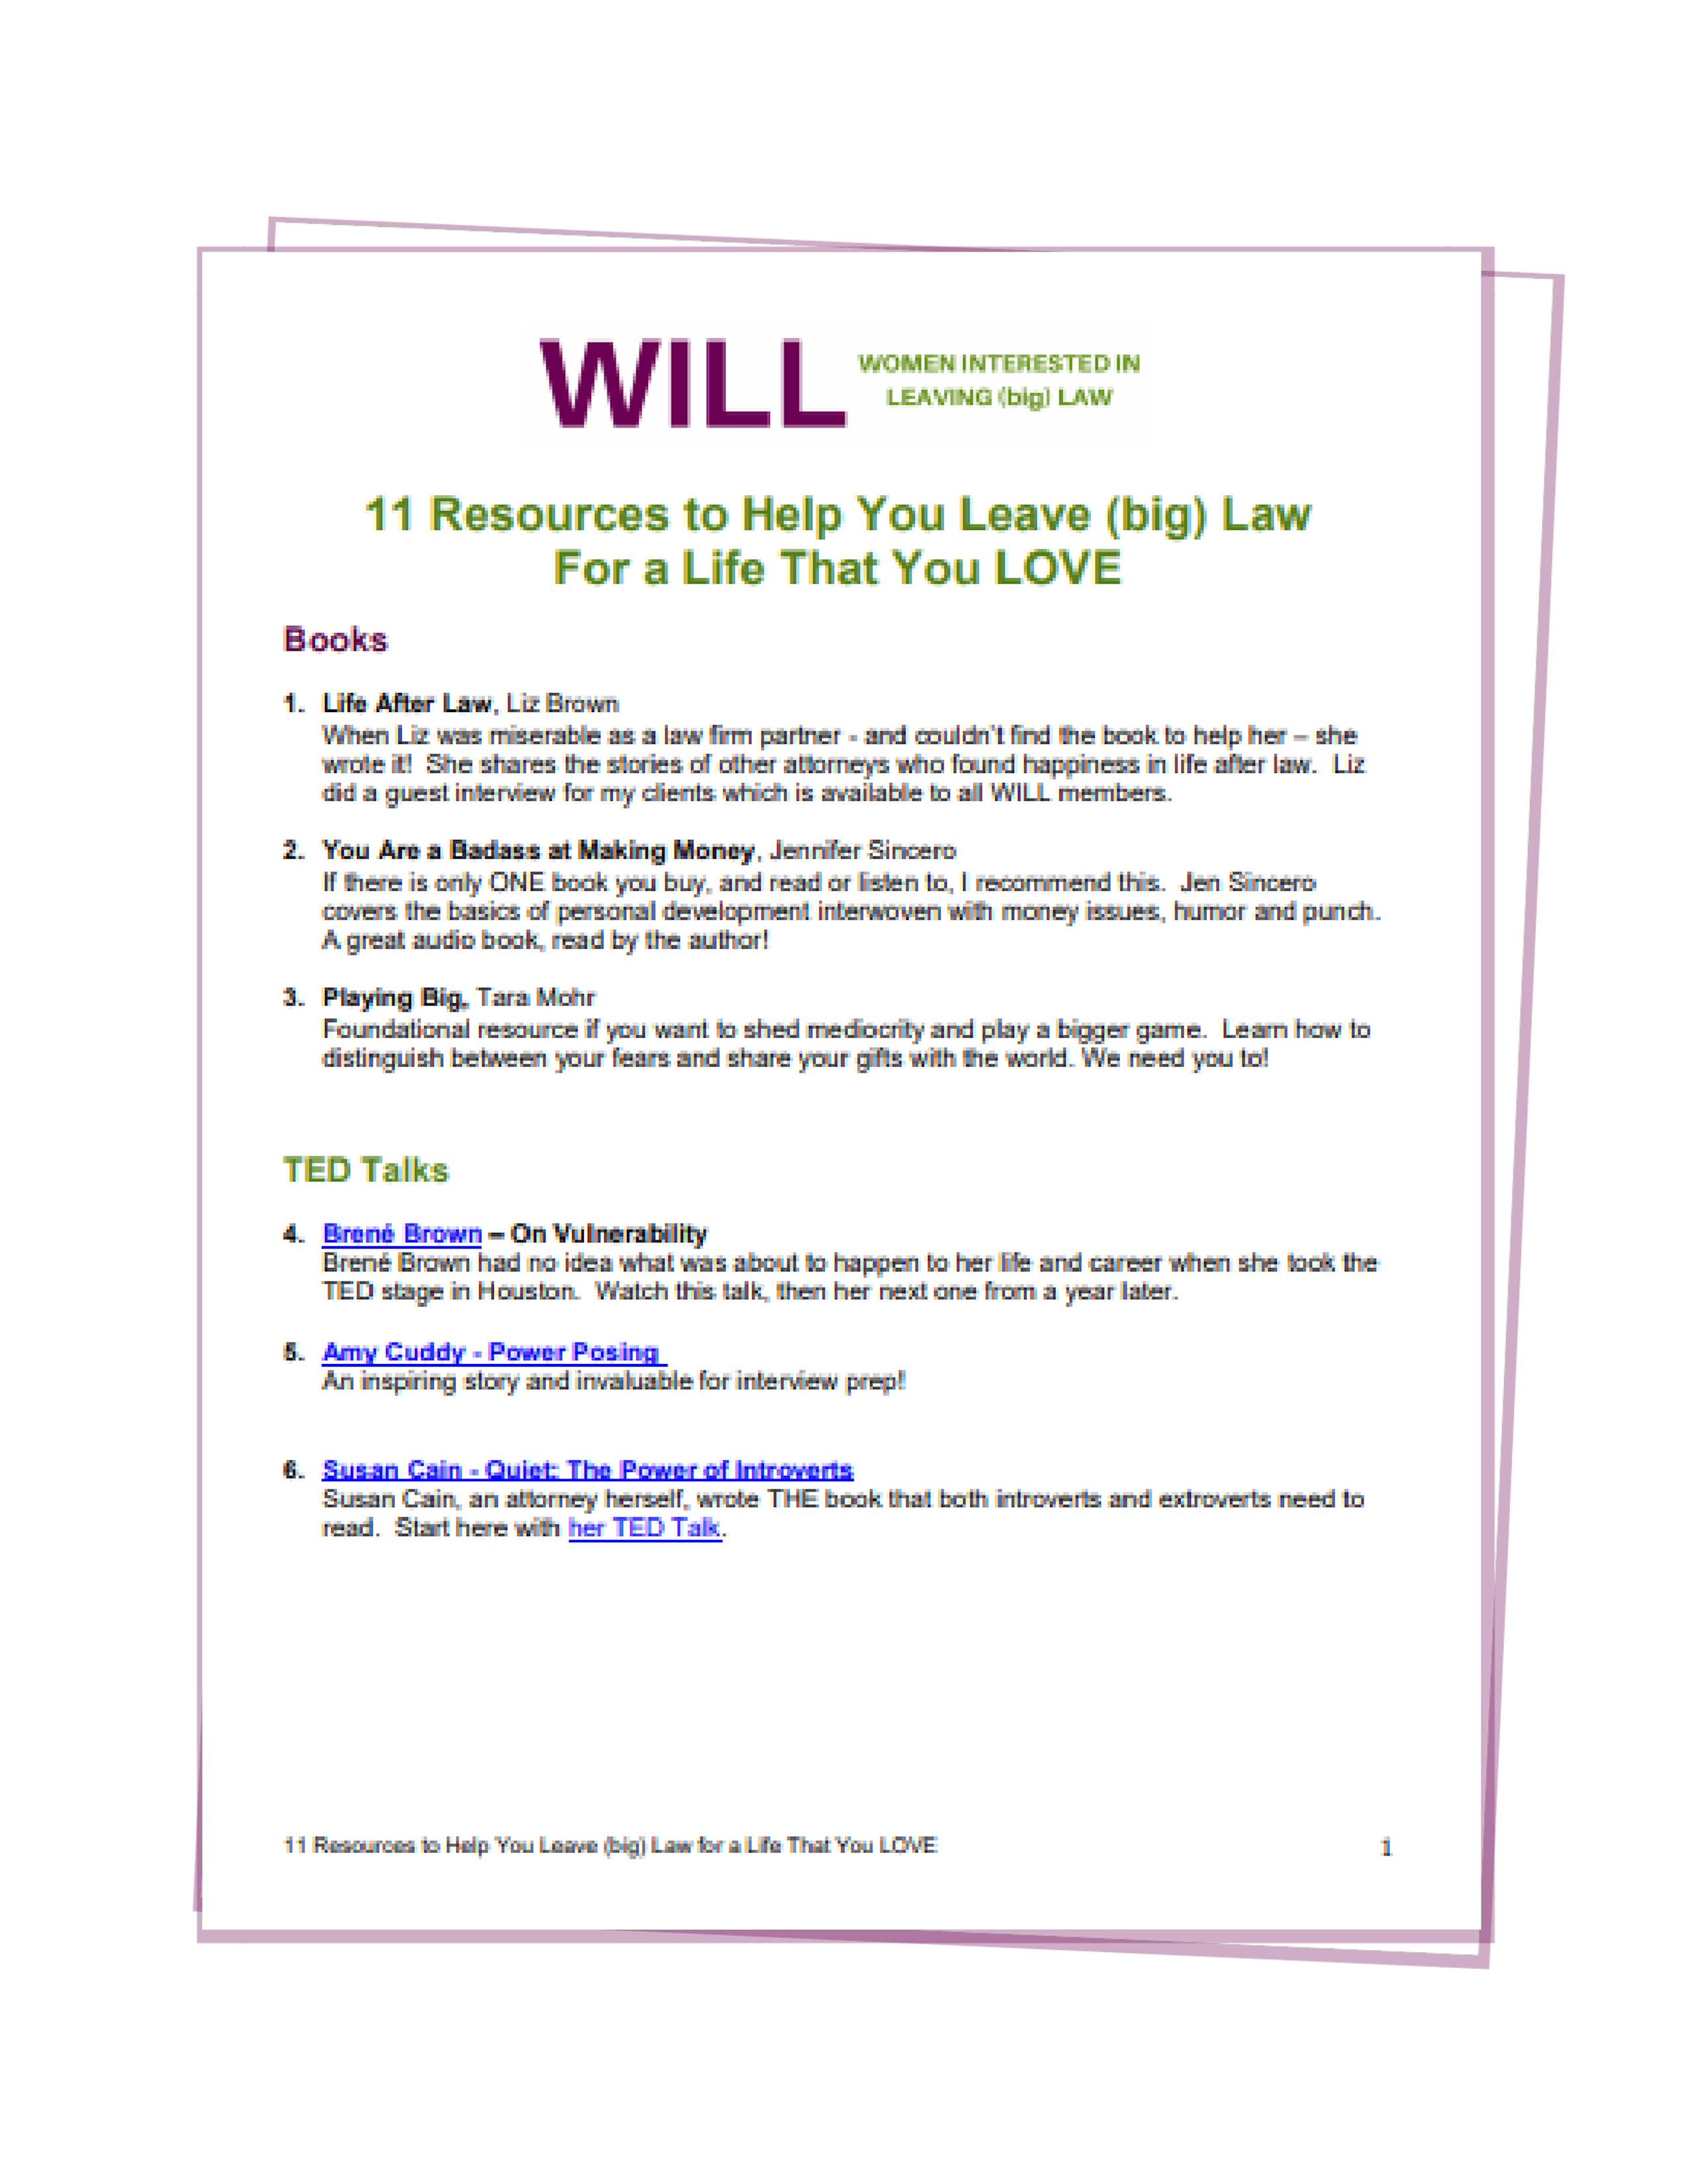 Home - Women interested in leaving law